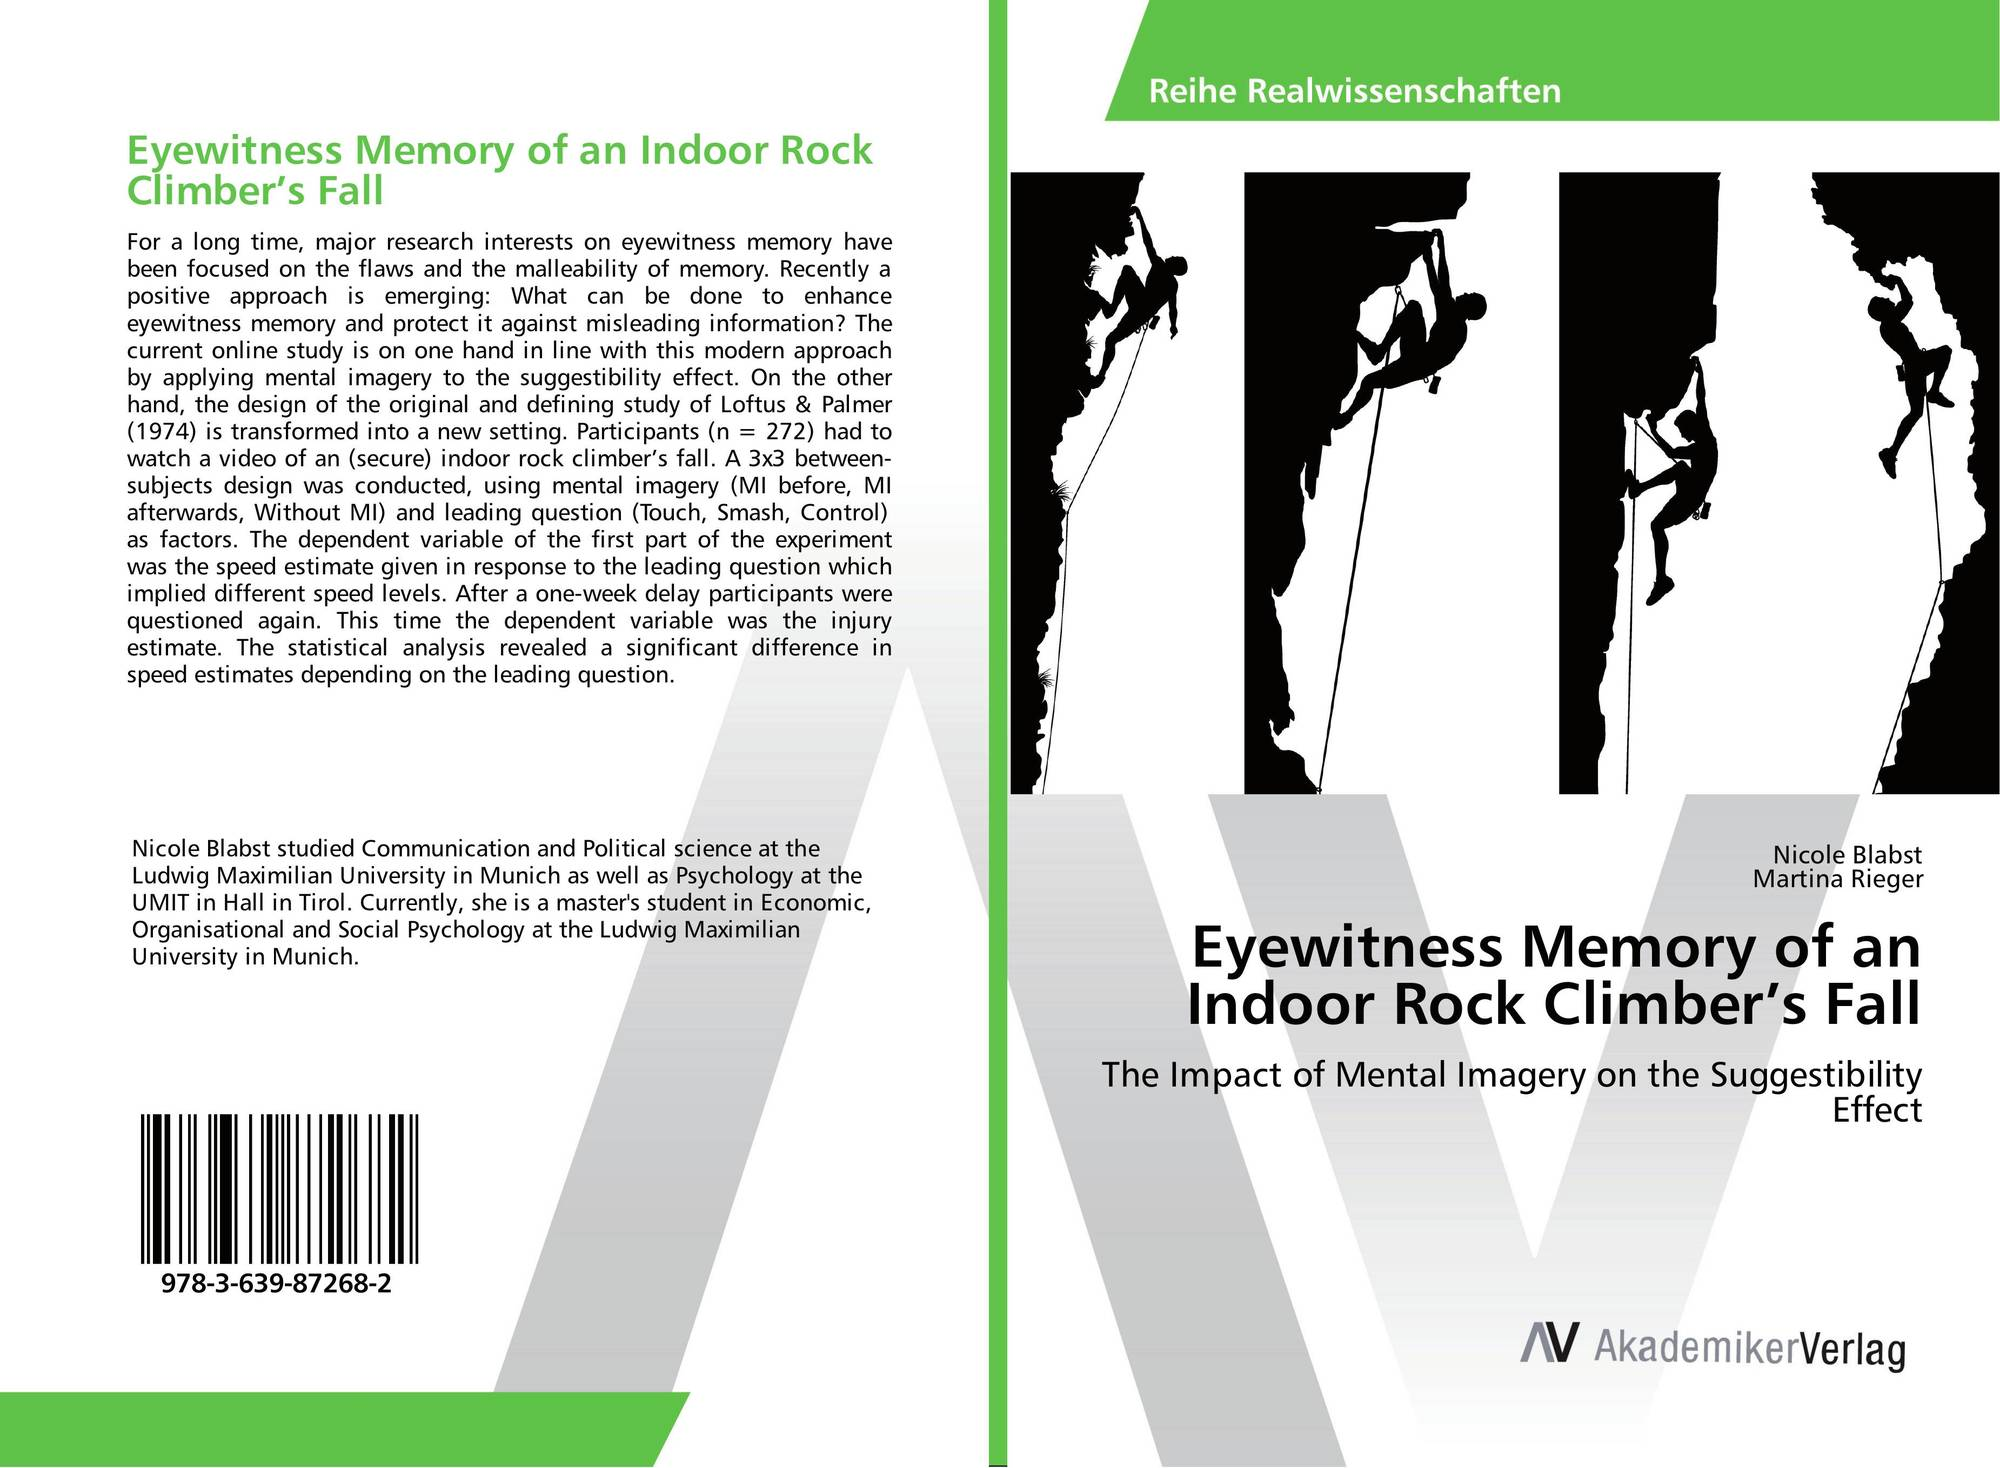 eyewitness memory Studies on eyewitness suggestibility in the 1970s that a systematic body of scien-   ing serious questions about the reliability of memory and eyewitness.